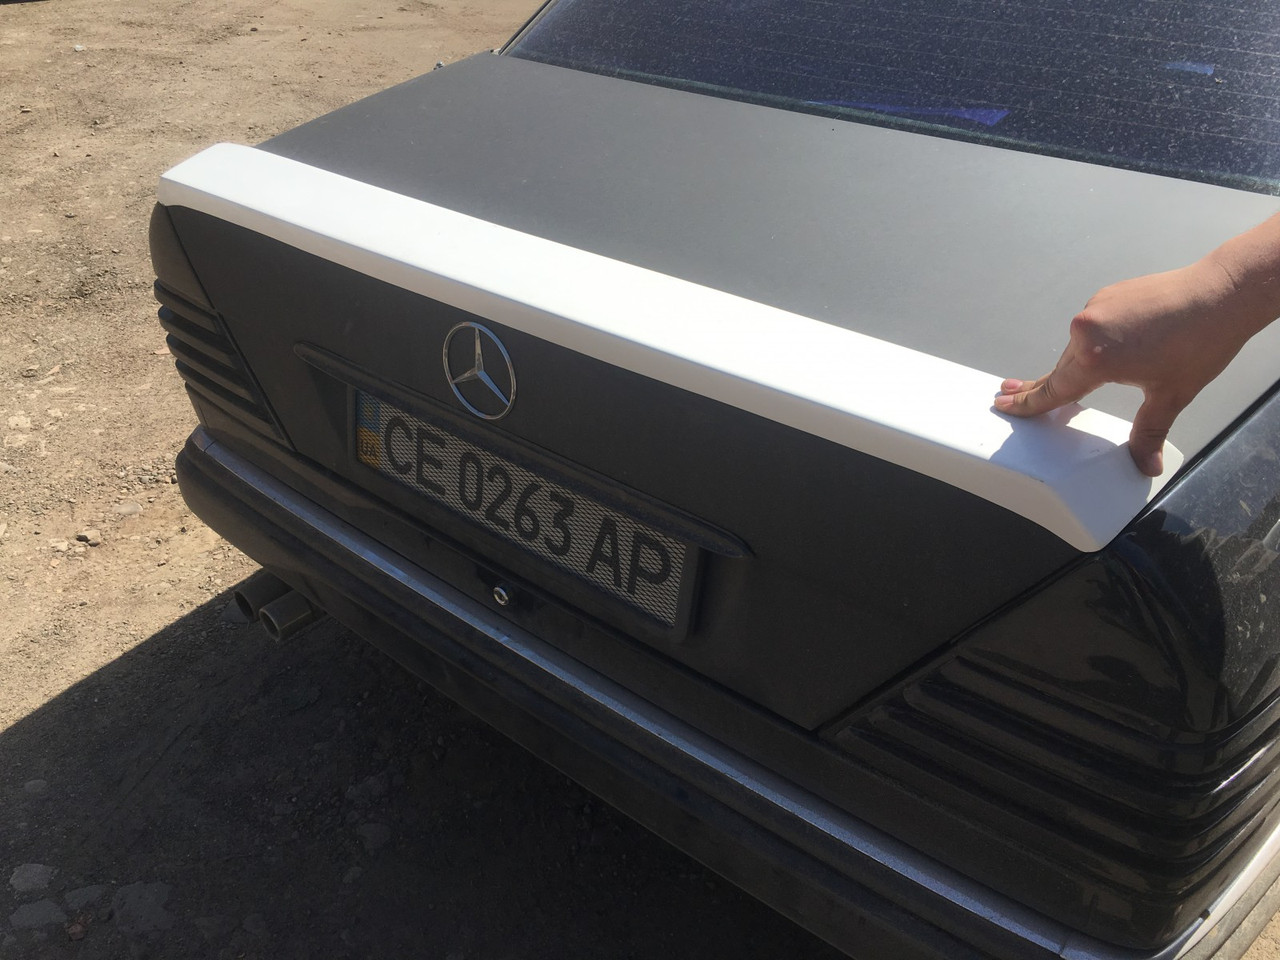 Mercedes W124 Спойлер под покраску - Digital Designs Ukraine в Черновцах